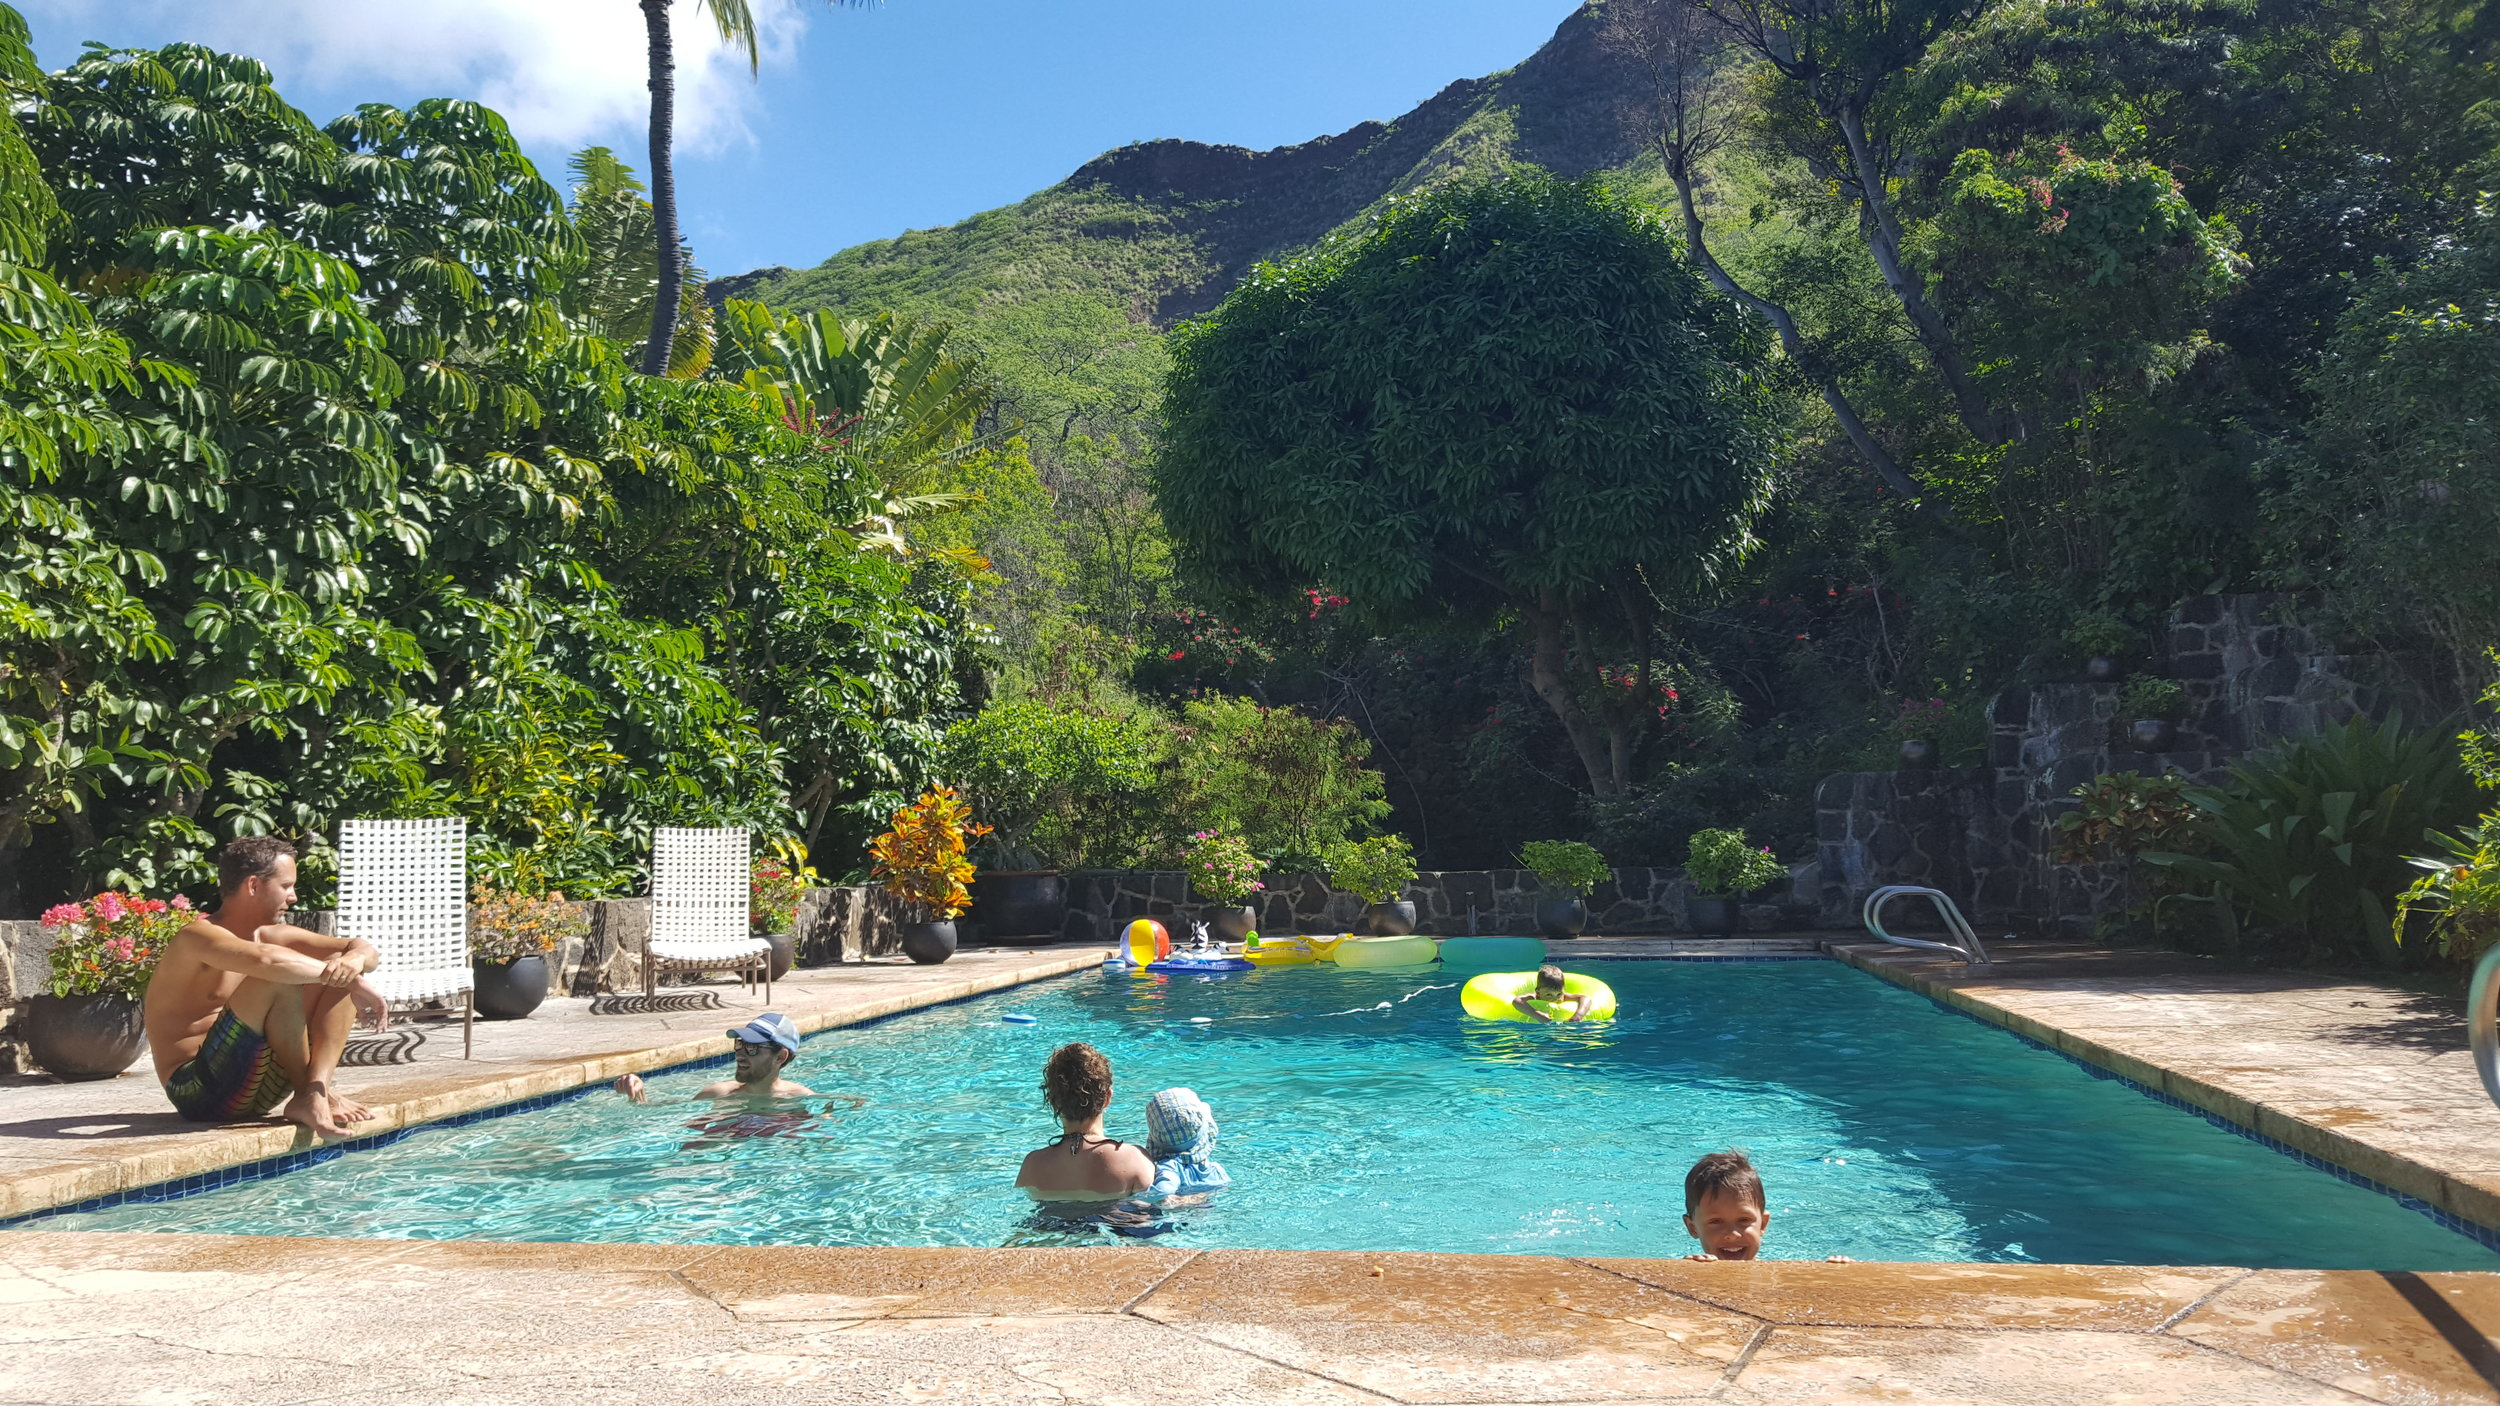 A visit to see Jesse, Michelle, and family at a friend's family house on the side of Diamond Head. Complete with views, a pool, and lots of space to run around.